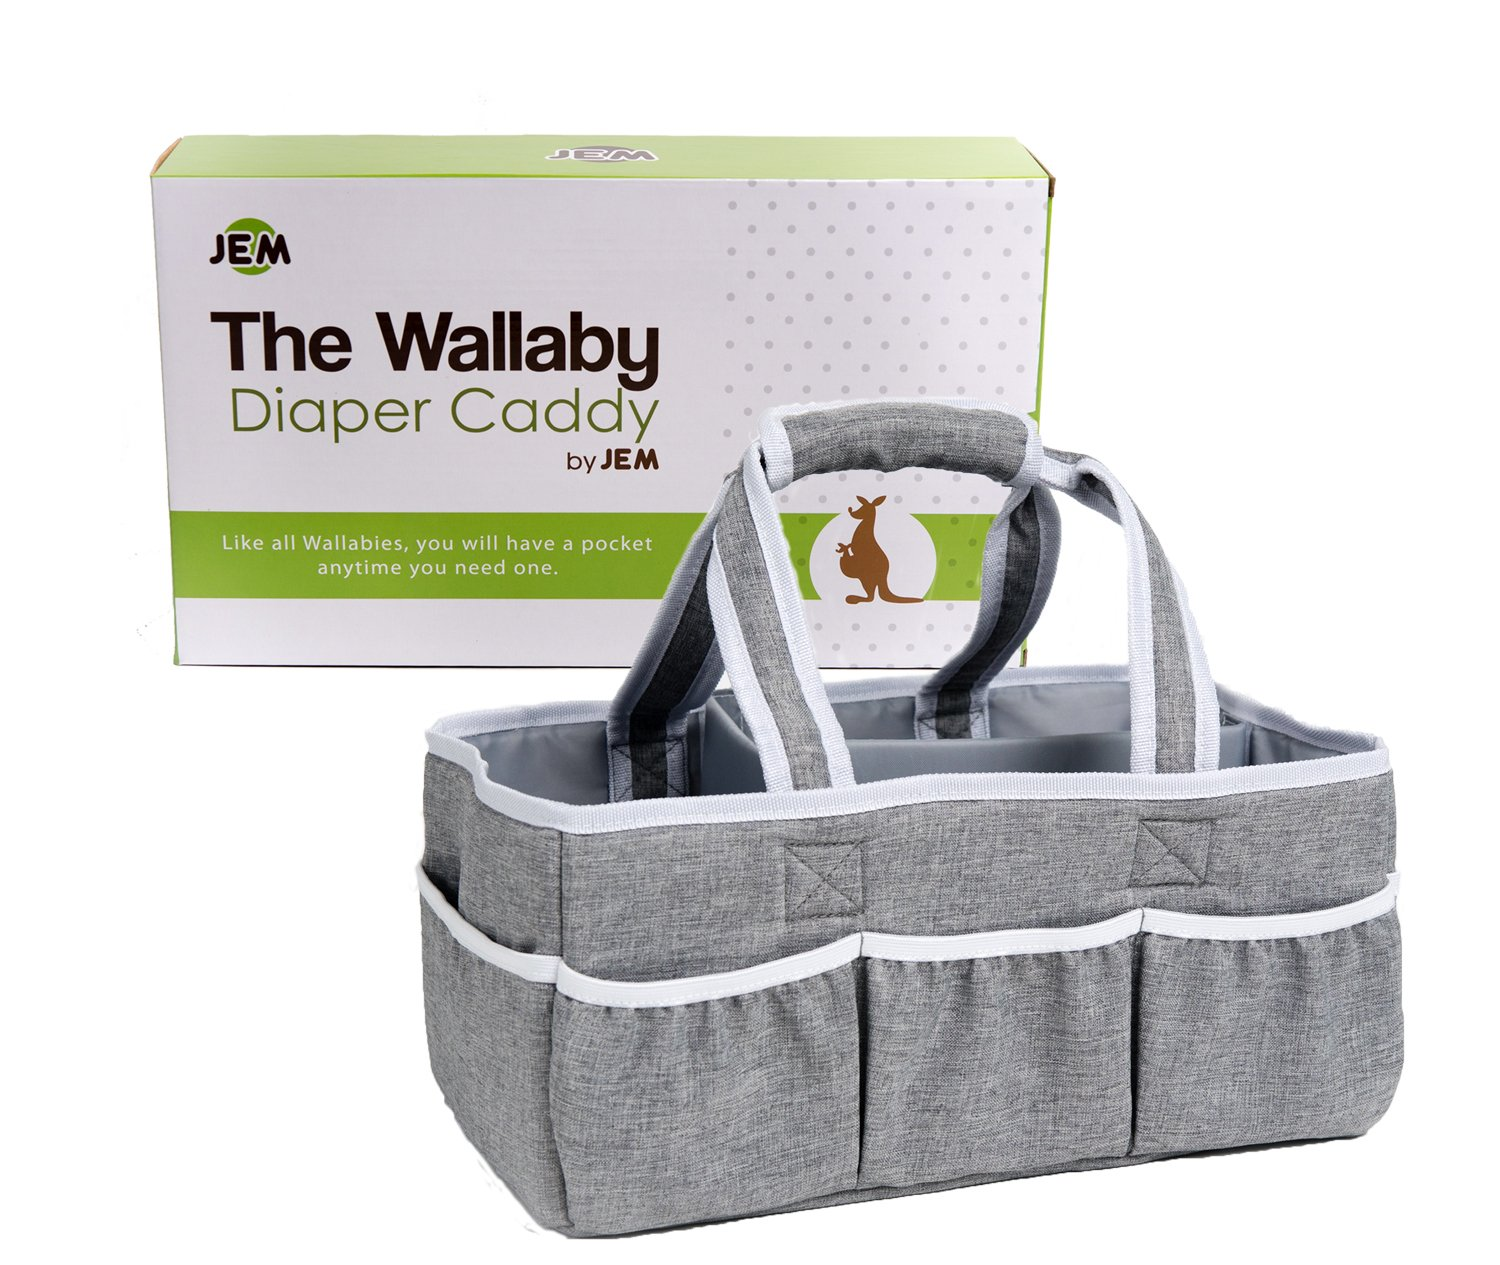 Wallaby Diaper Caddy Storage Bin - Organizer for Diapers, Wipes, Baby Bottles and More. Great for Home, Car, Travel or a Baby Shower Gift. JEM